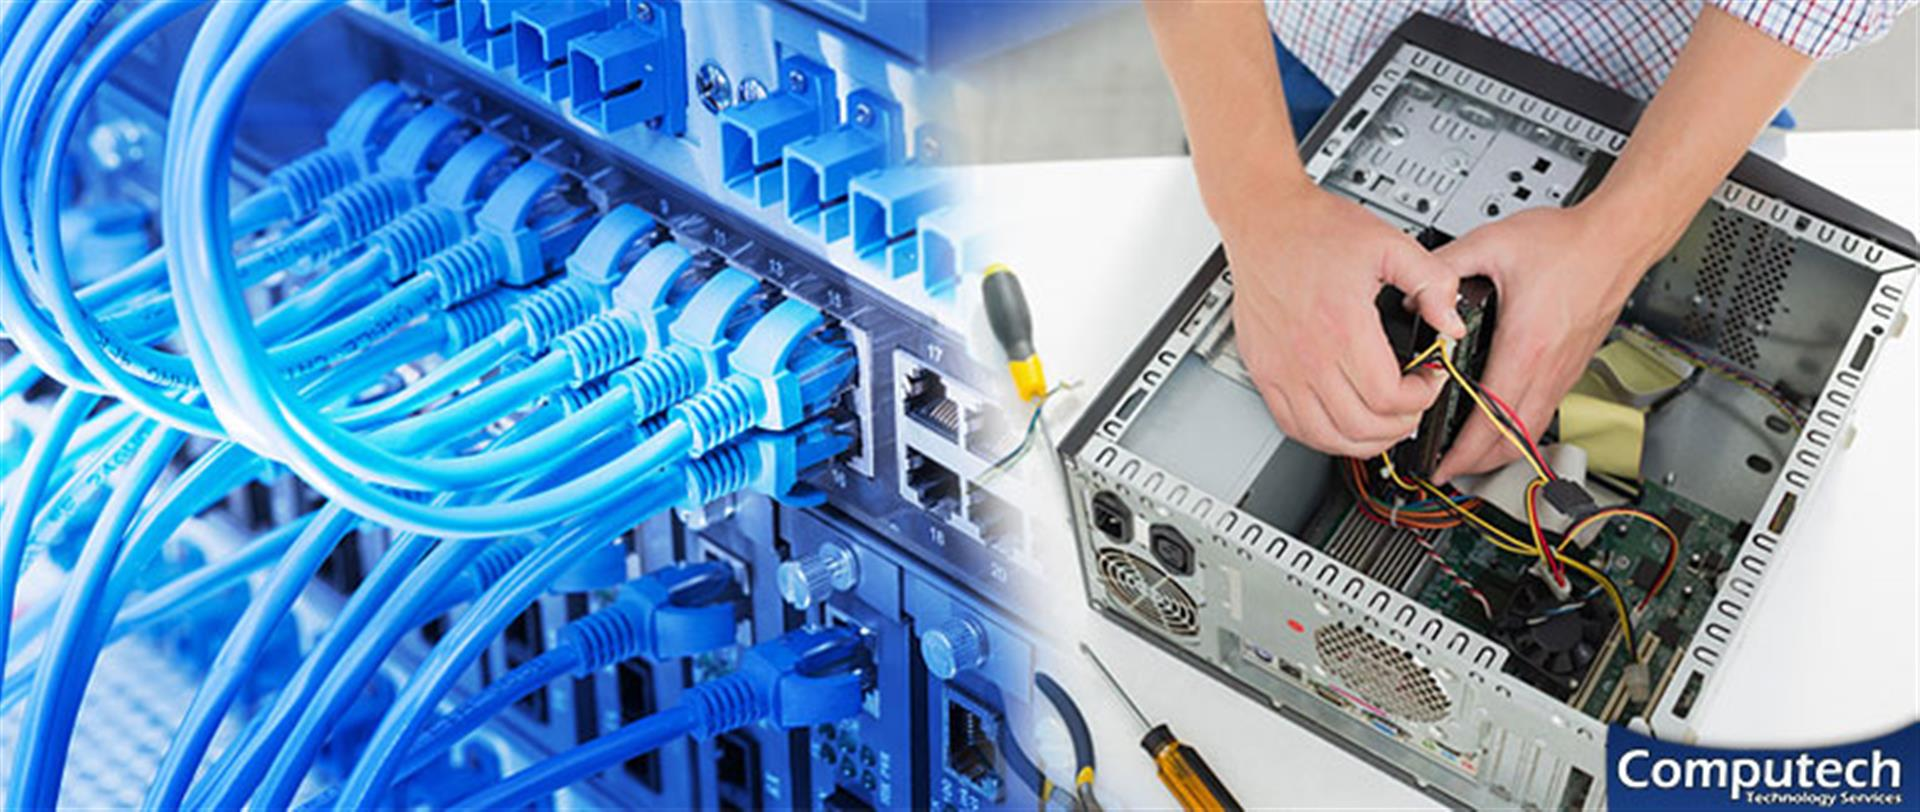 Maynardville Tennessee On-Site PC & Printer Repair, Network, Voice & Data Cabling Services